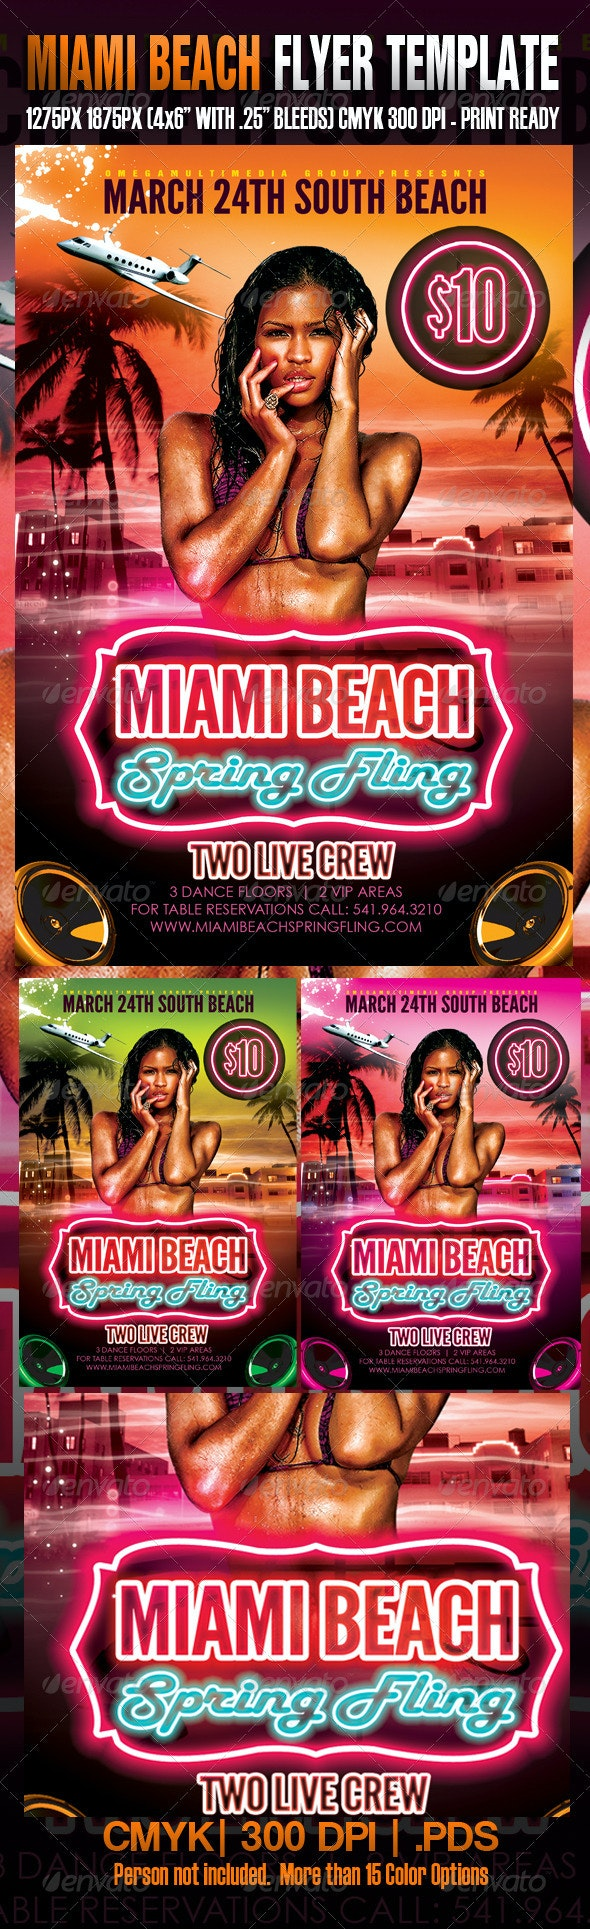 Miami Spring Fling Template - Flyers Print Templates